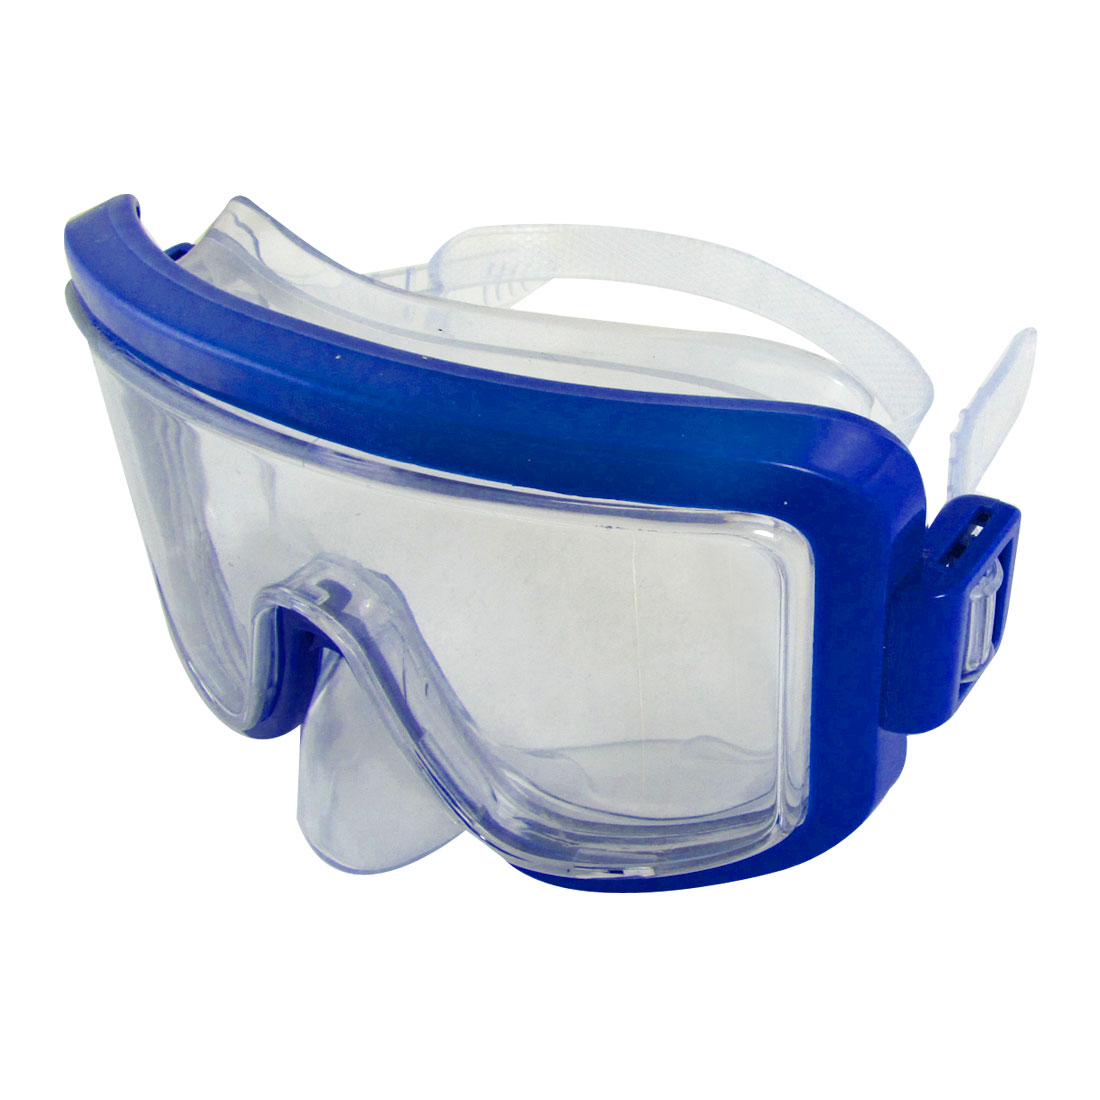 Adults Blue Frame Adjustable Headstrap Swimming Diving Goggles